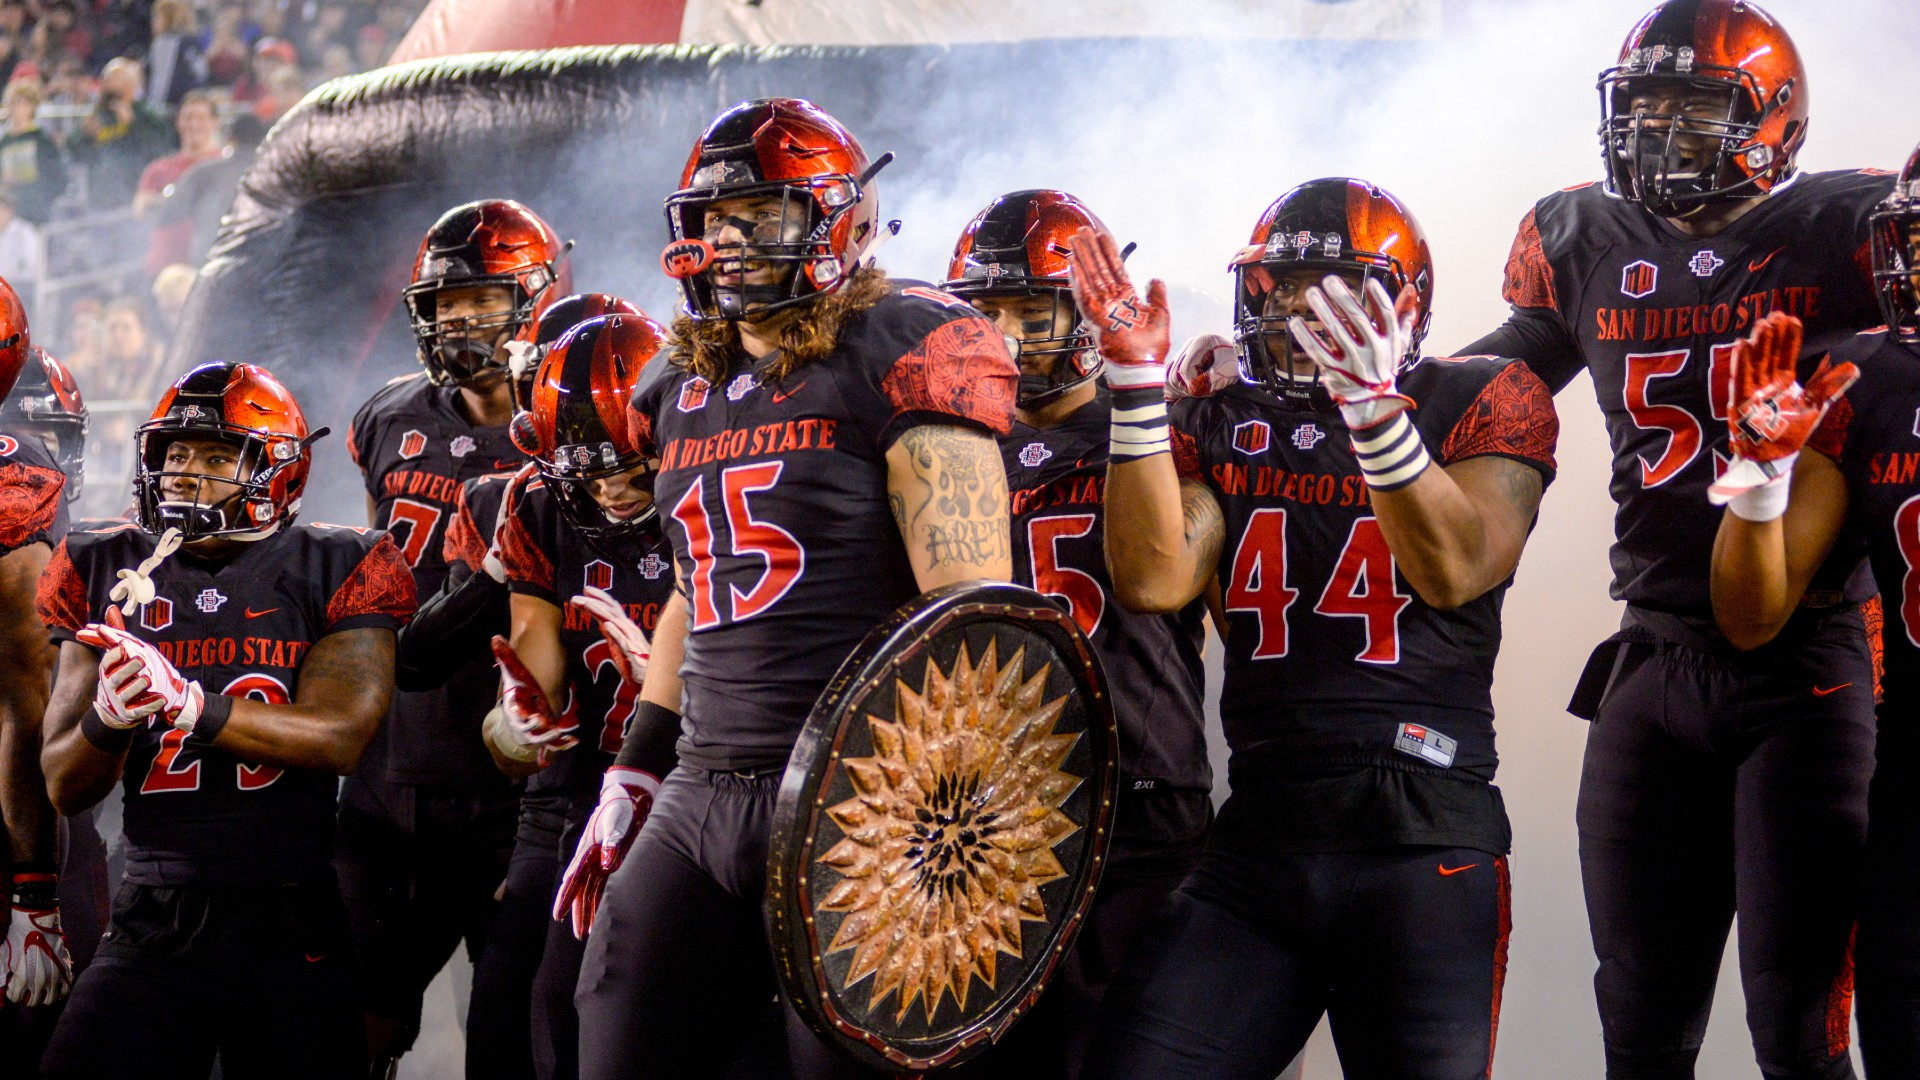 College Football Odds & Picks: How To Bet San Diego State vs. Utah State, North Carolina vs. Virginia, More article feature image